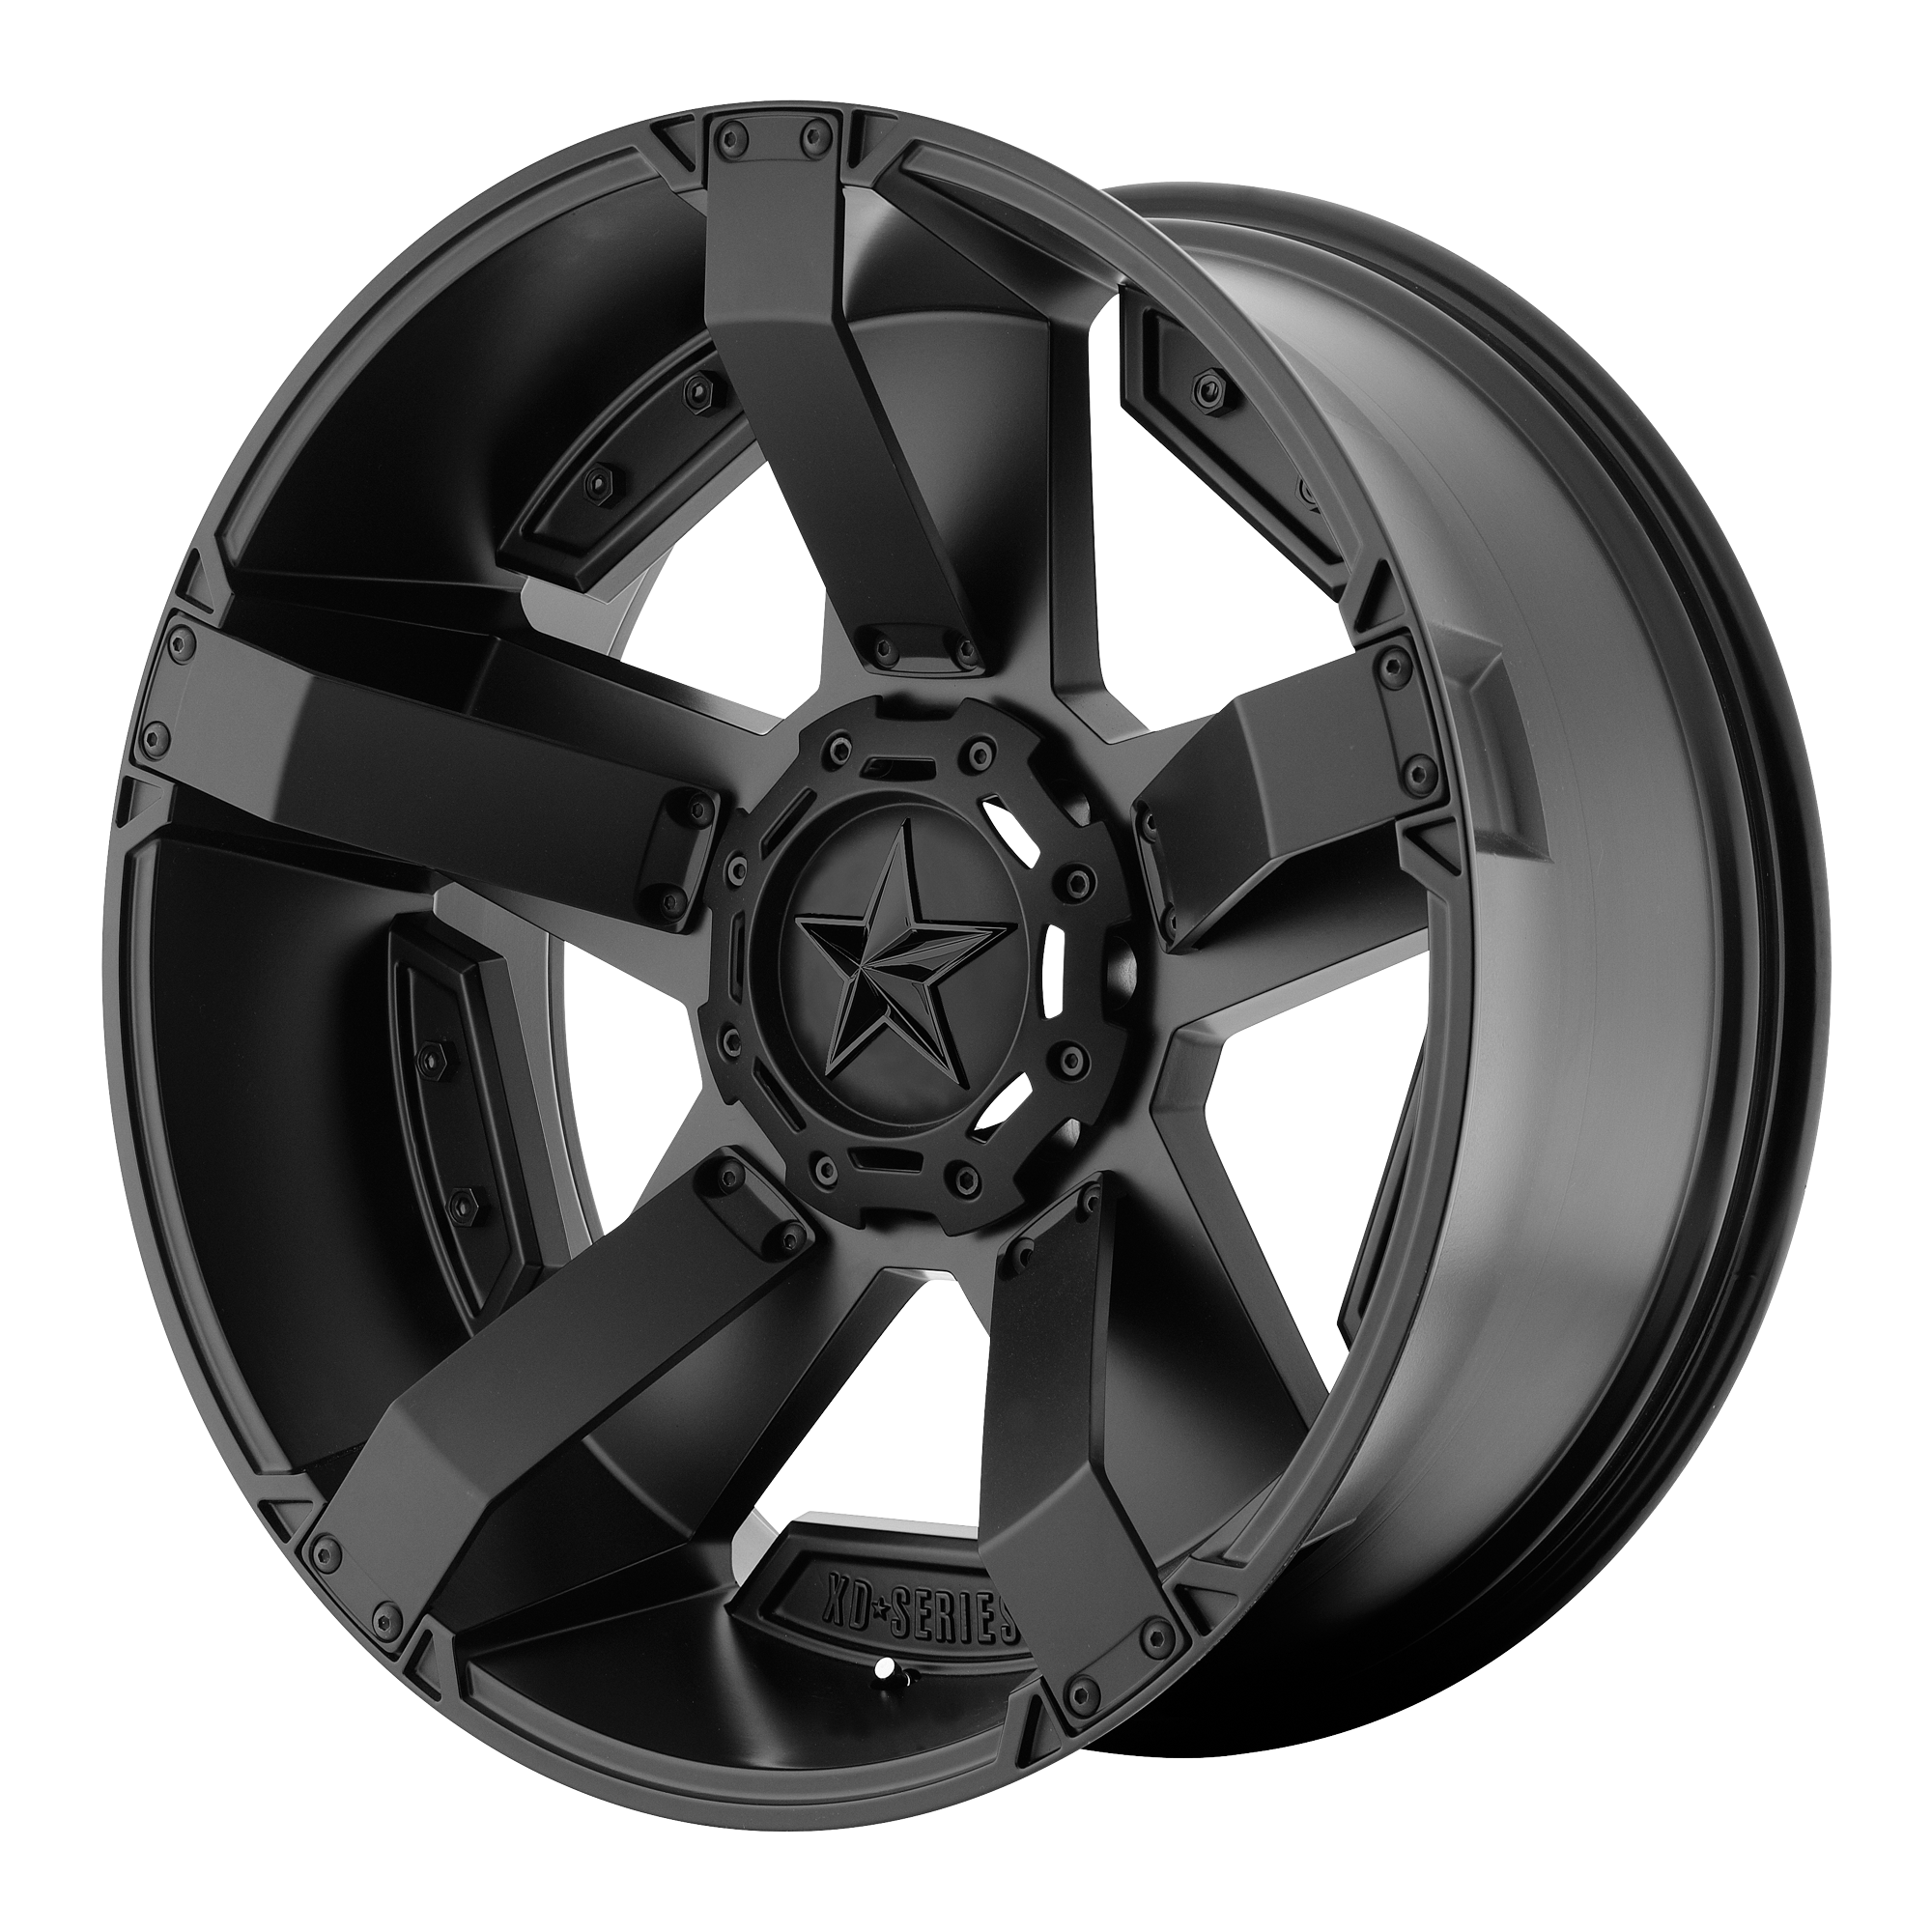 XD SERIES BY KMC WHEELS XD811 ROCKSTAR II Matte Black With Accents